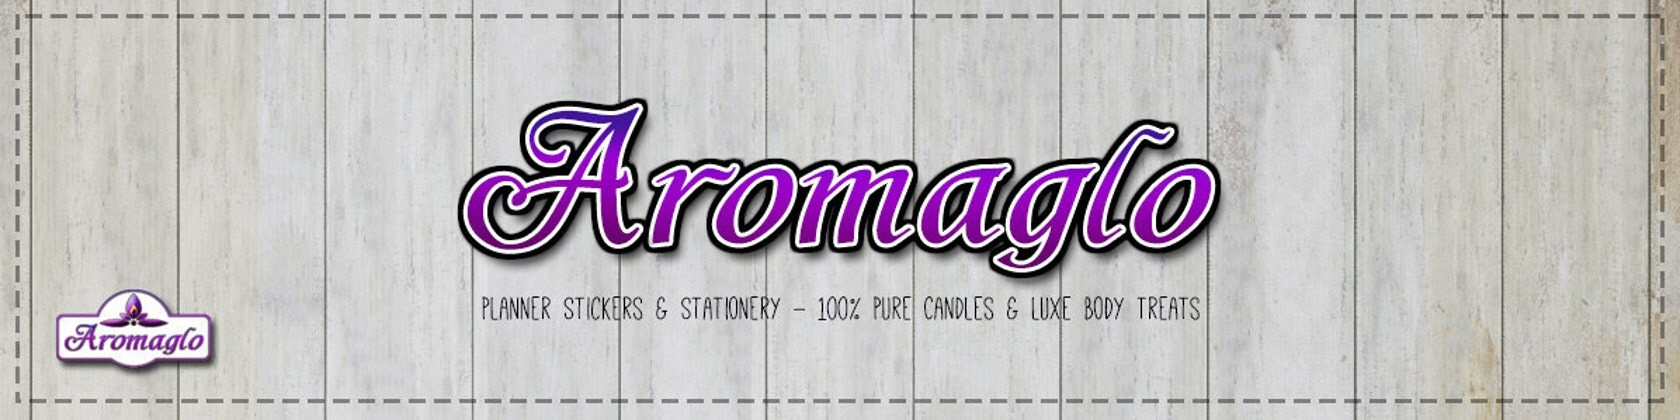 Stickers stationery pure eco candles body treats by aromaglo